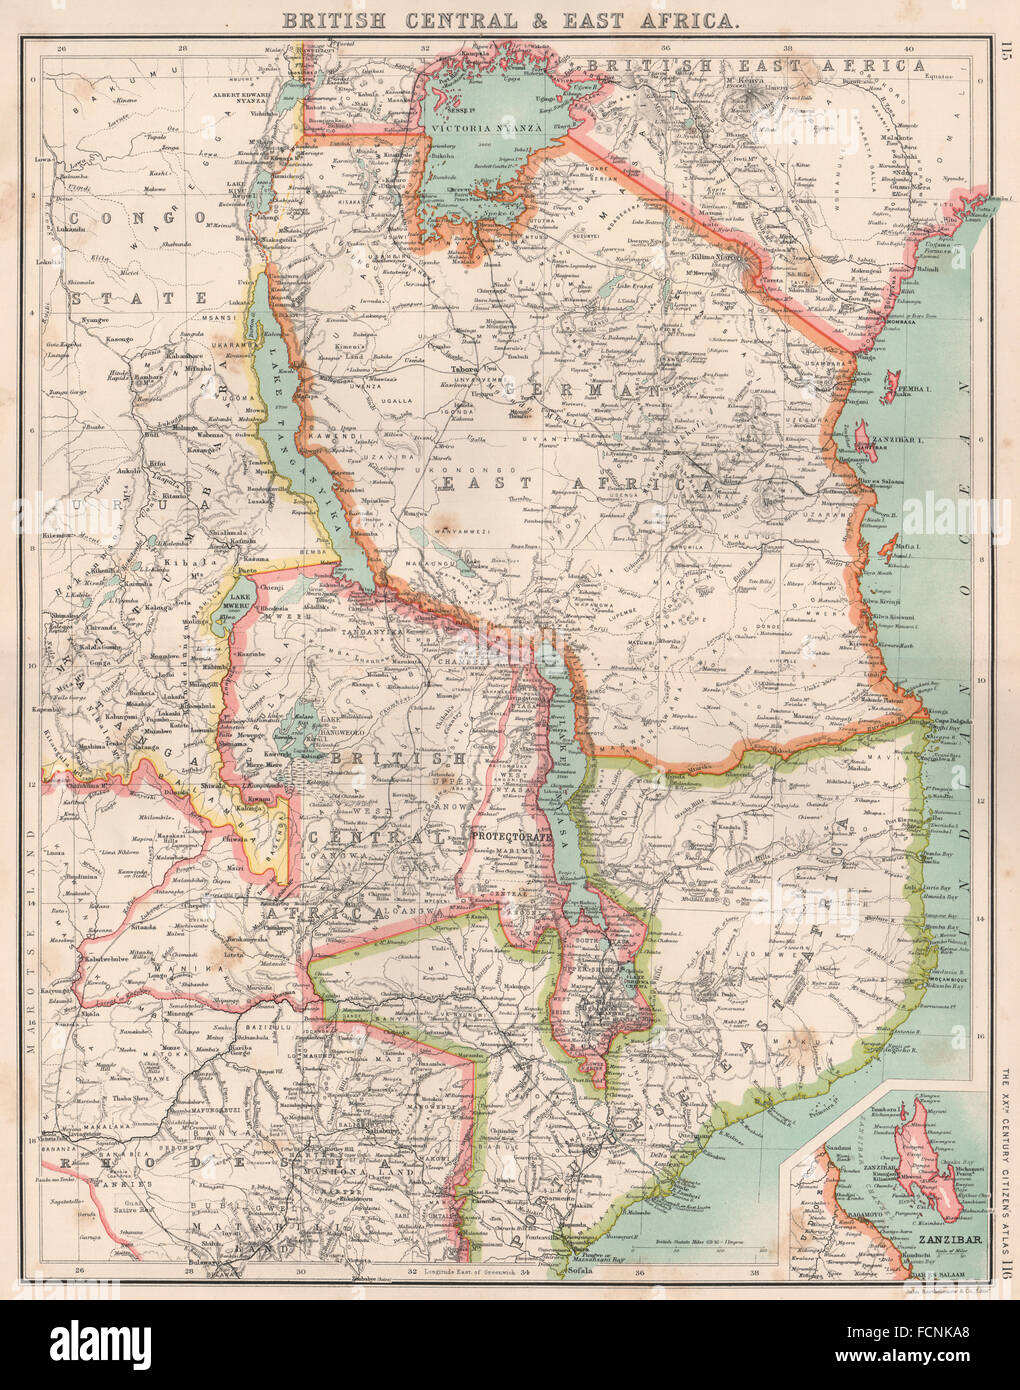 East africa british central africa german east africa malawi stock east africa british central africa german east africa malawi tanzania 1901 map gumiabroncs Gallery